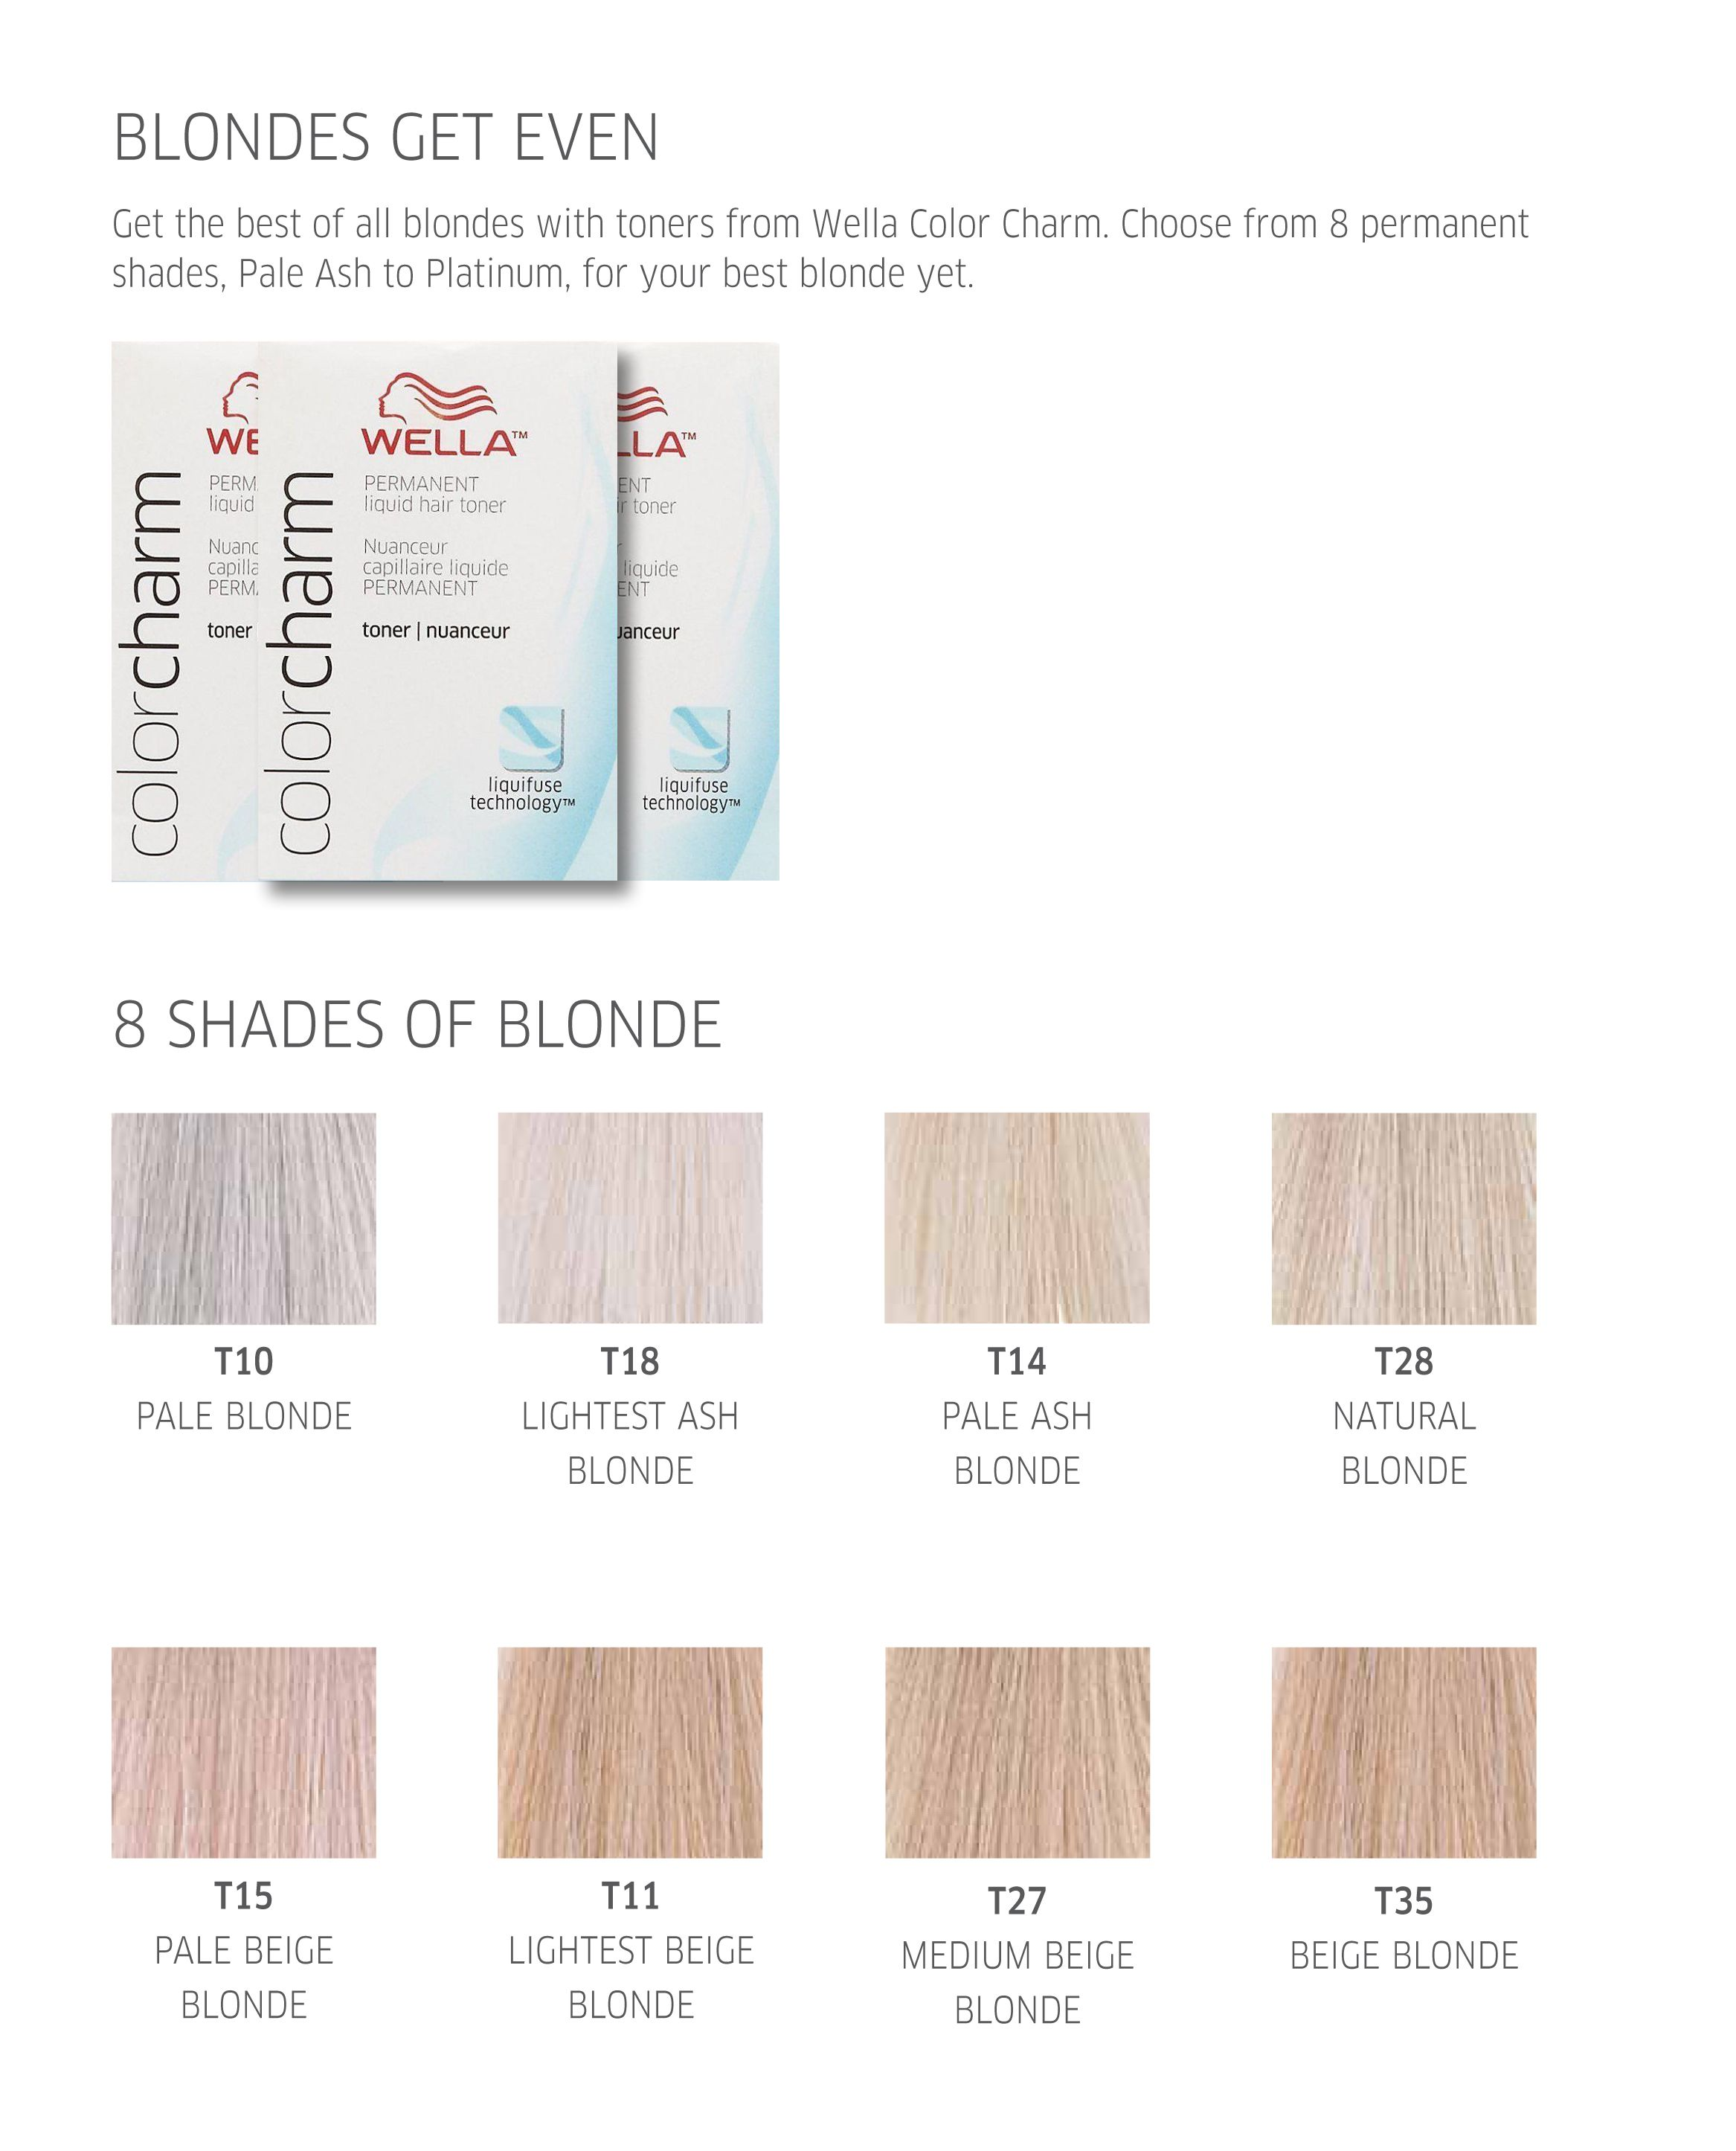 Wella color charm blondes get even blonde hair products also rh pinterest